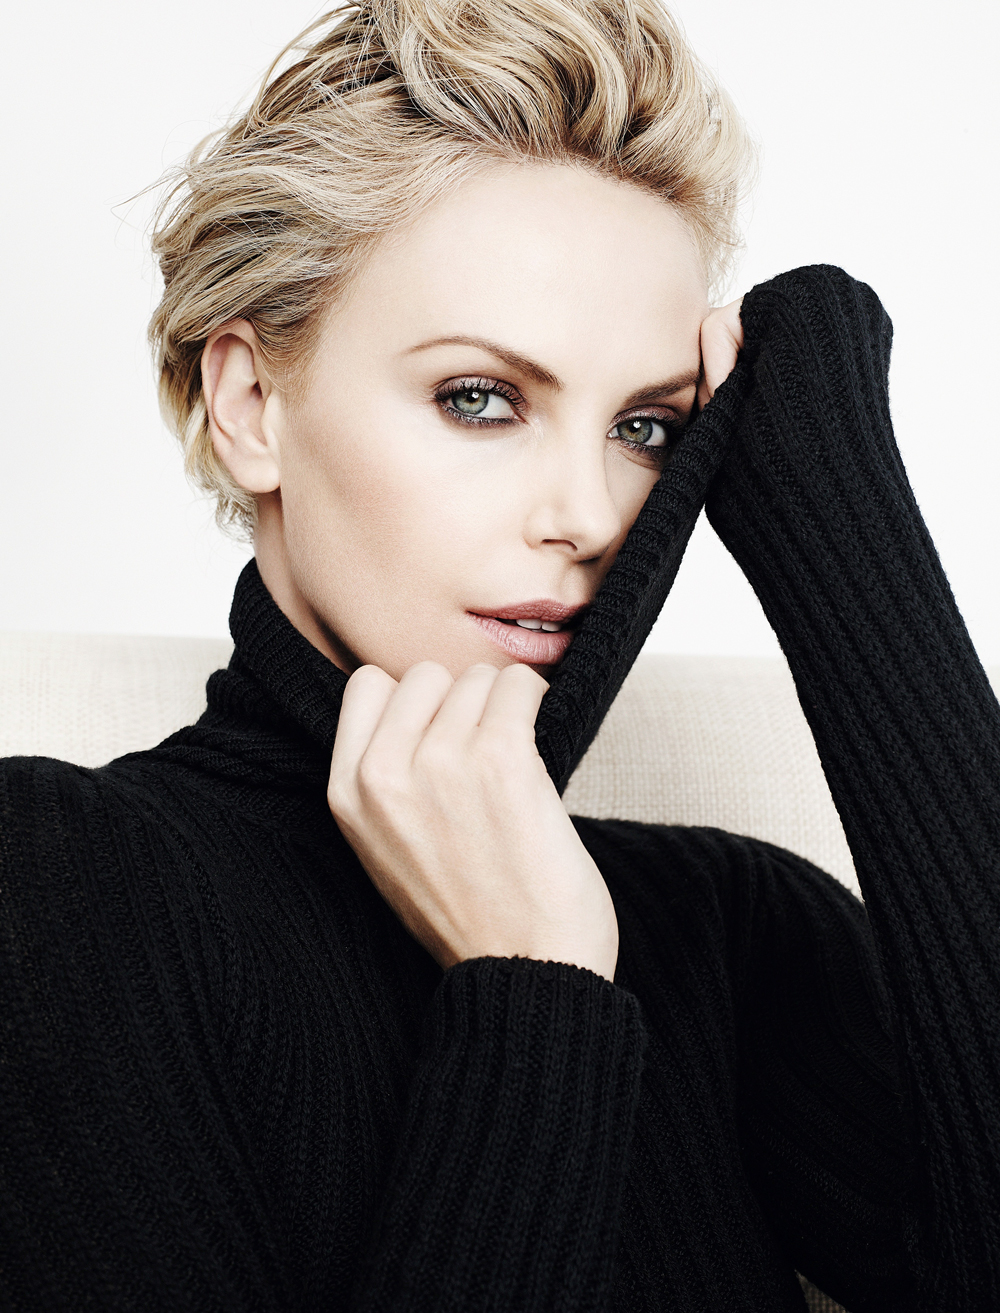 Charlize Theron: Karim Sadli Photoshoot 2014 for Dior -04 - GotCeleb Charlize Theron